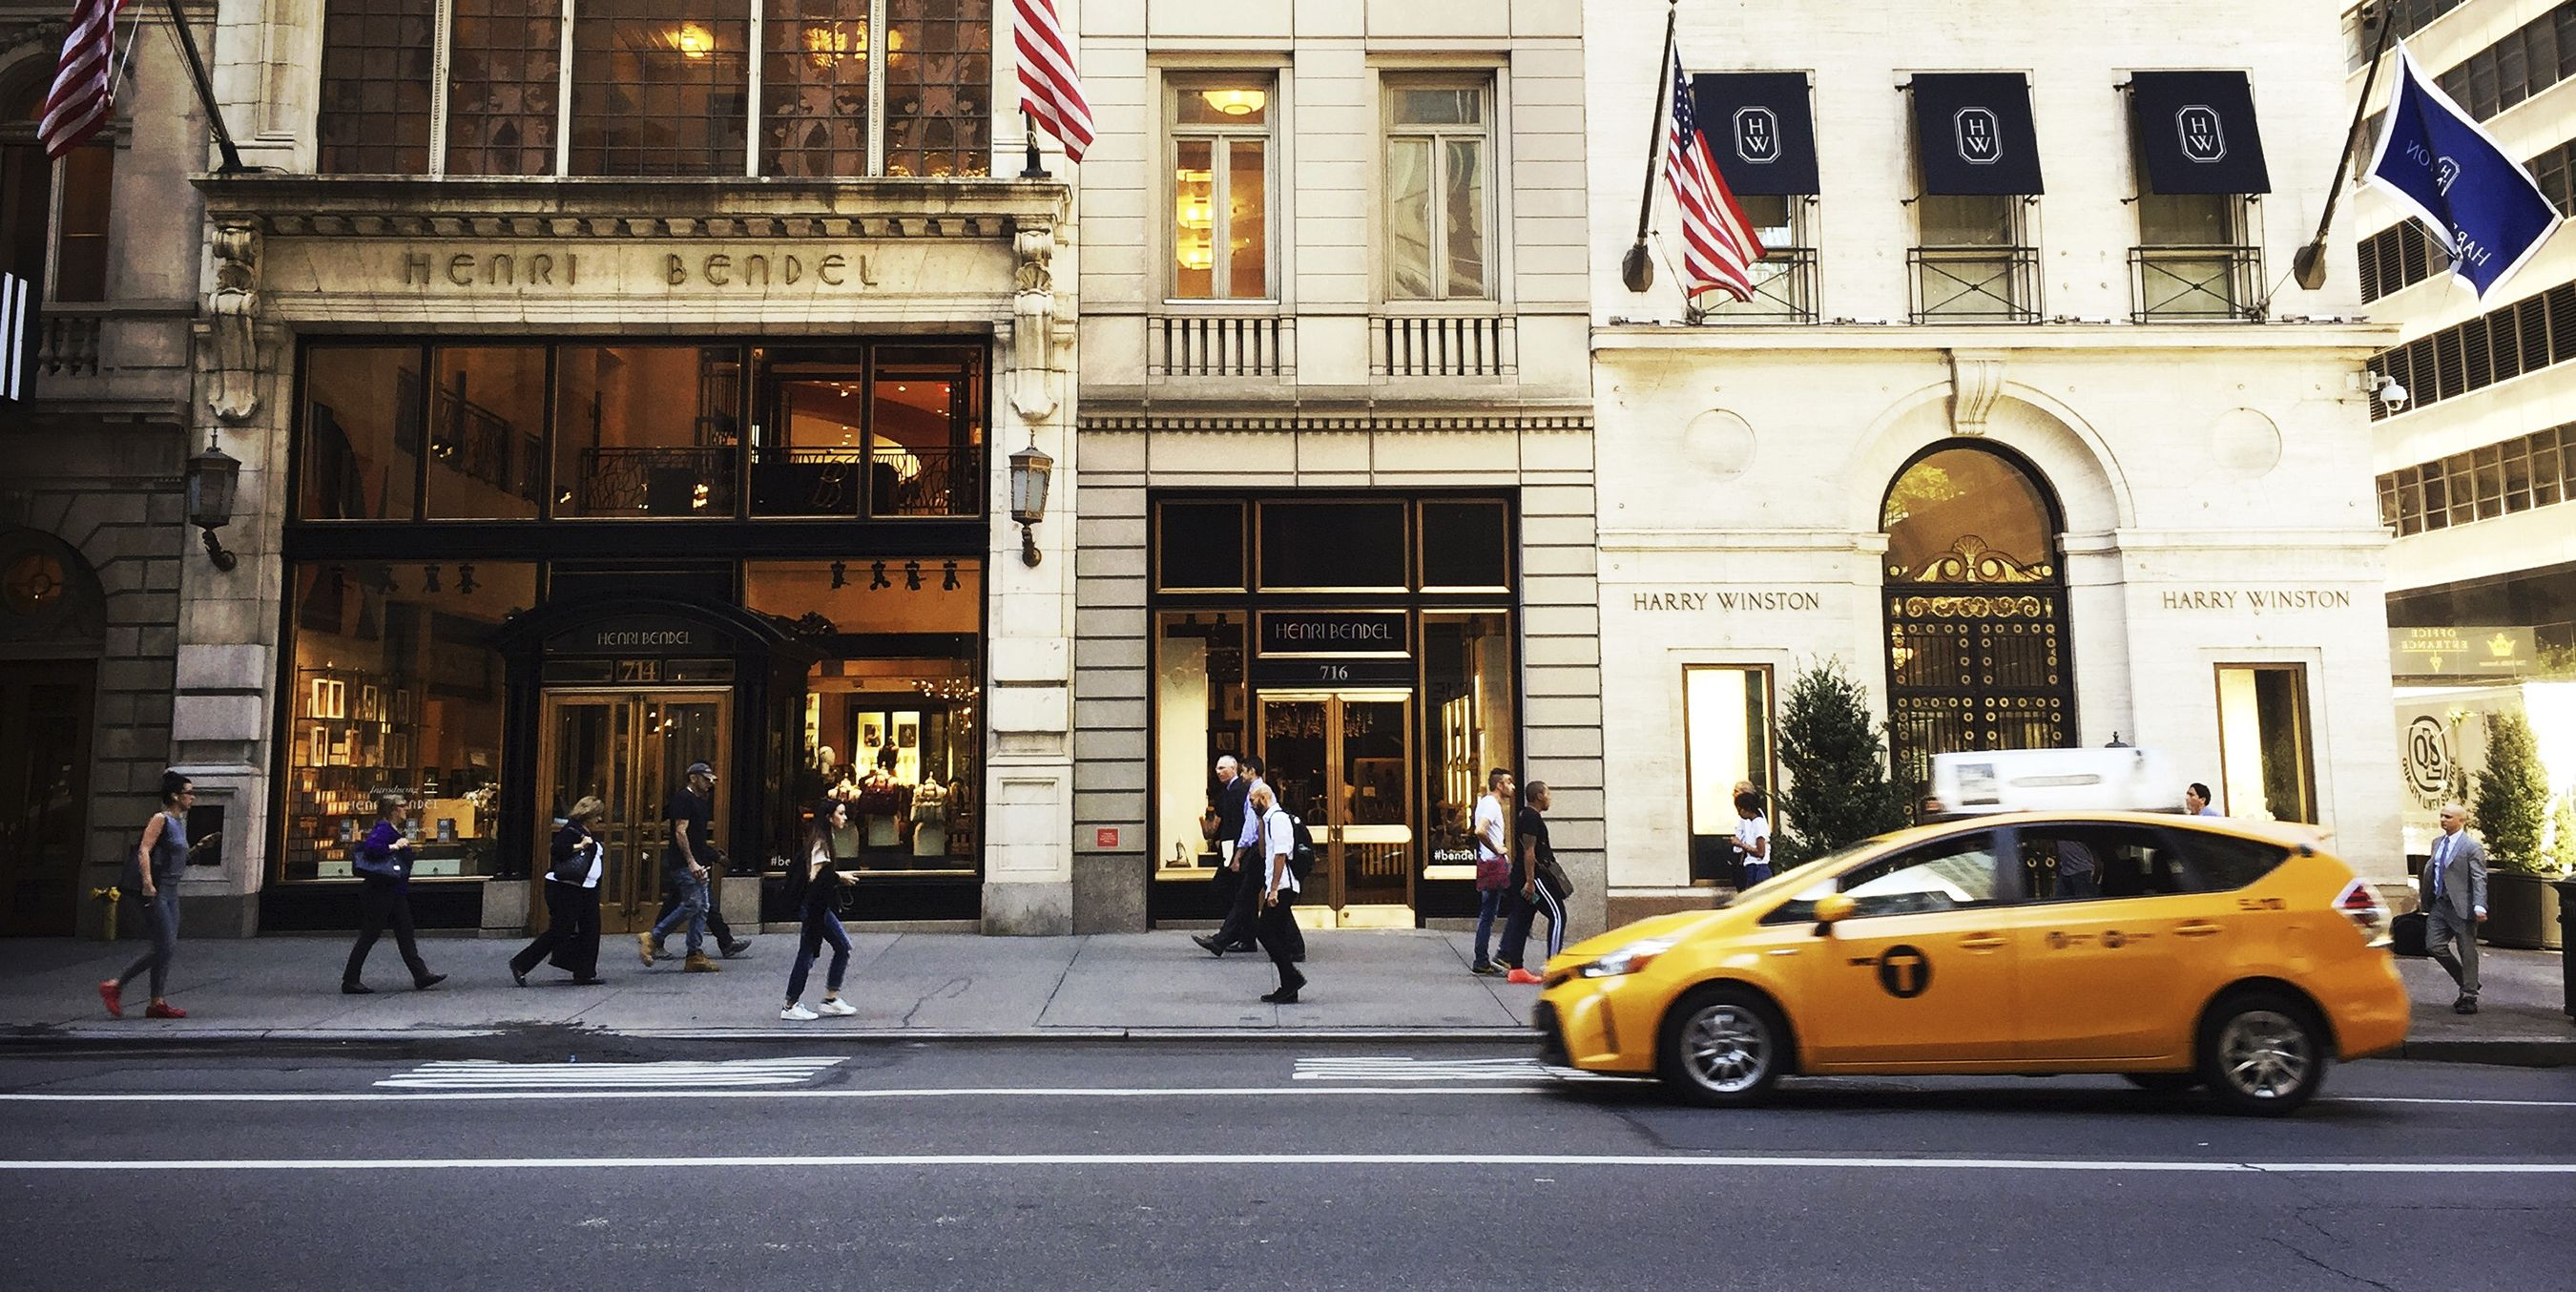 Henri Bendel Stores Closing After 123 Years Henri Bendel Shutting Down